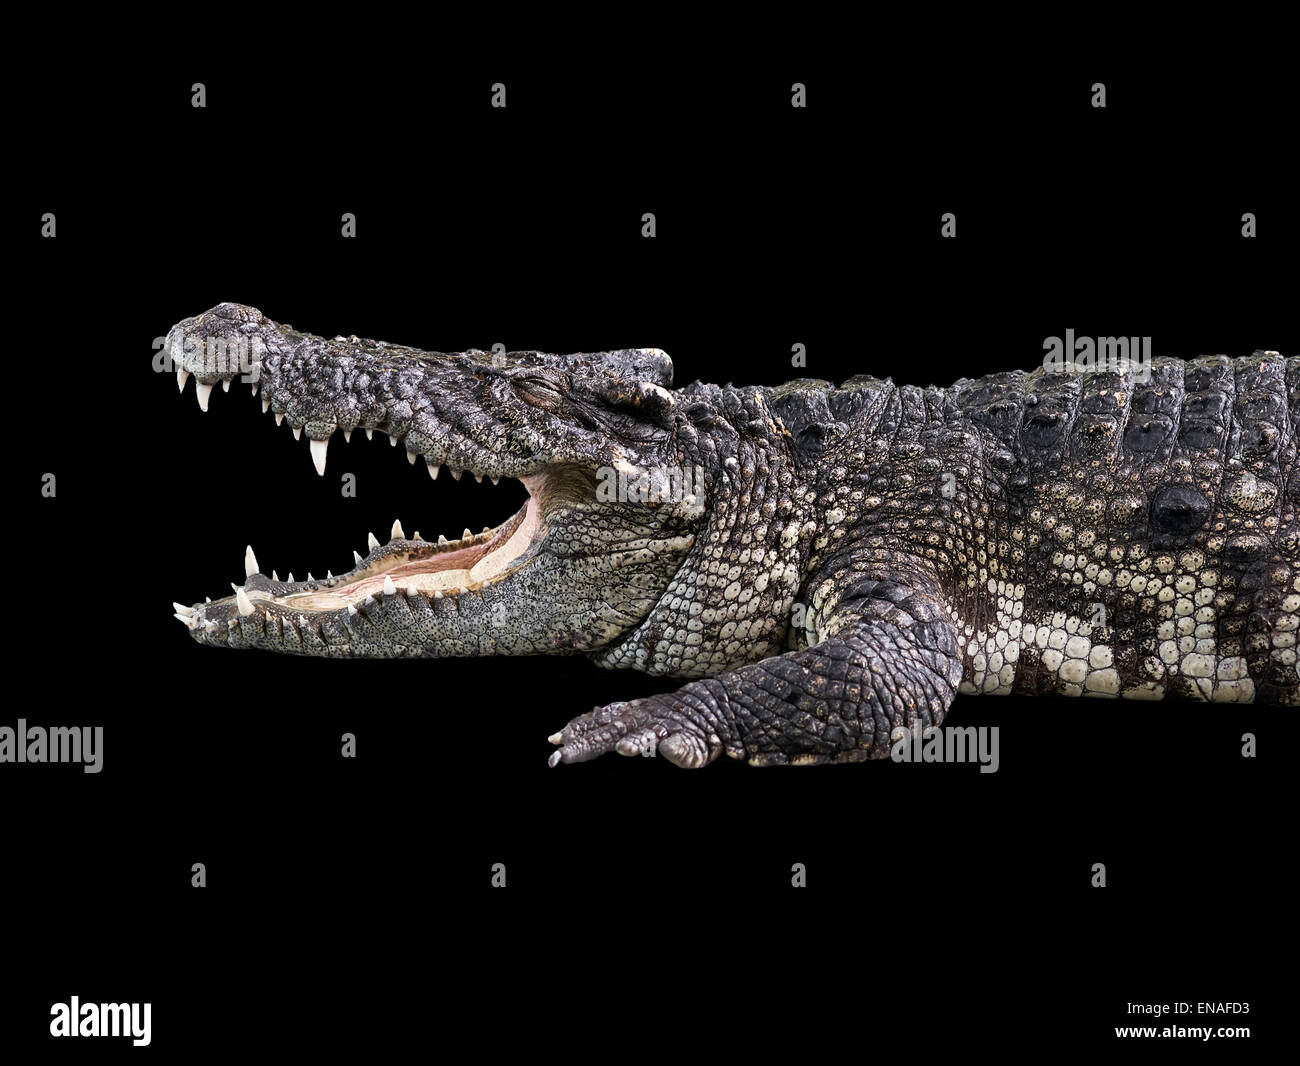 Crocodile with mouth open against a black background. Cut-out. - Stock Image